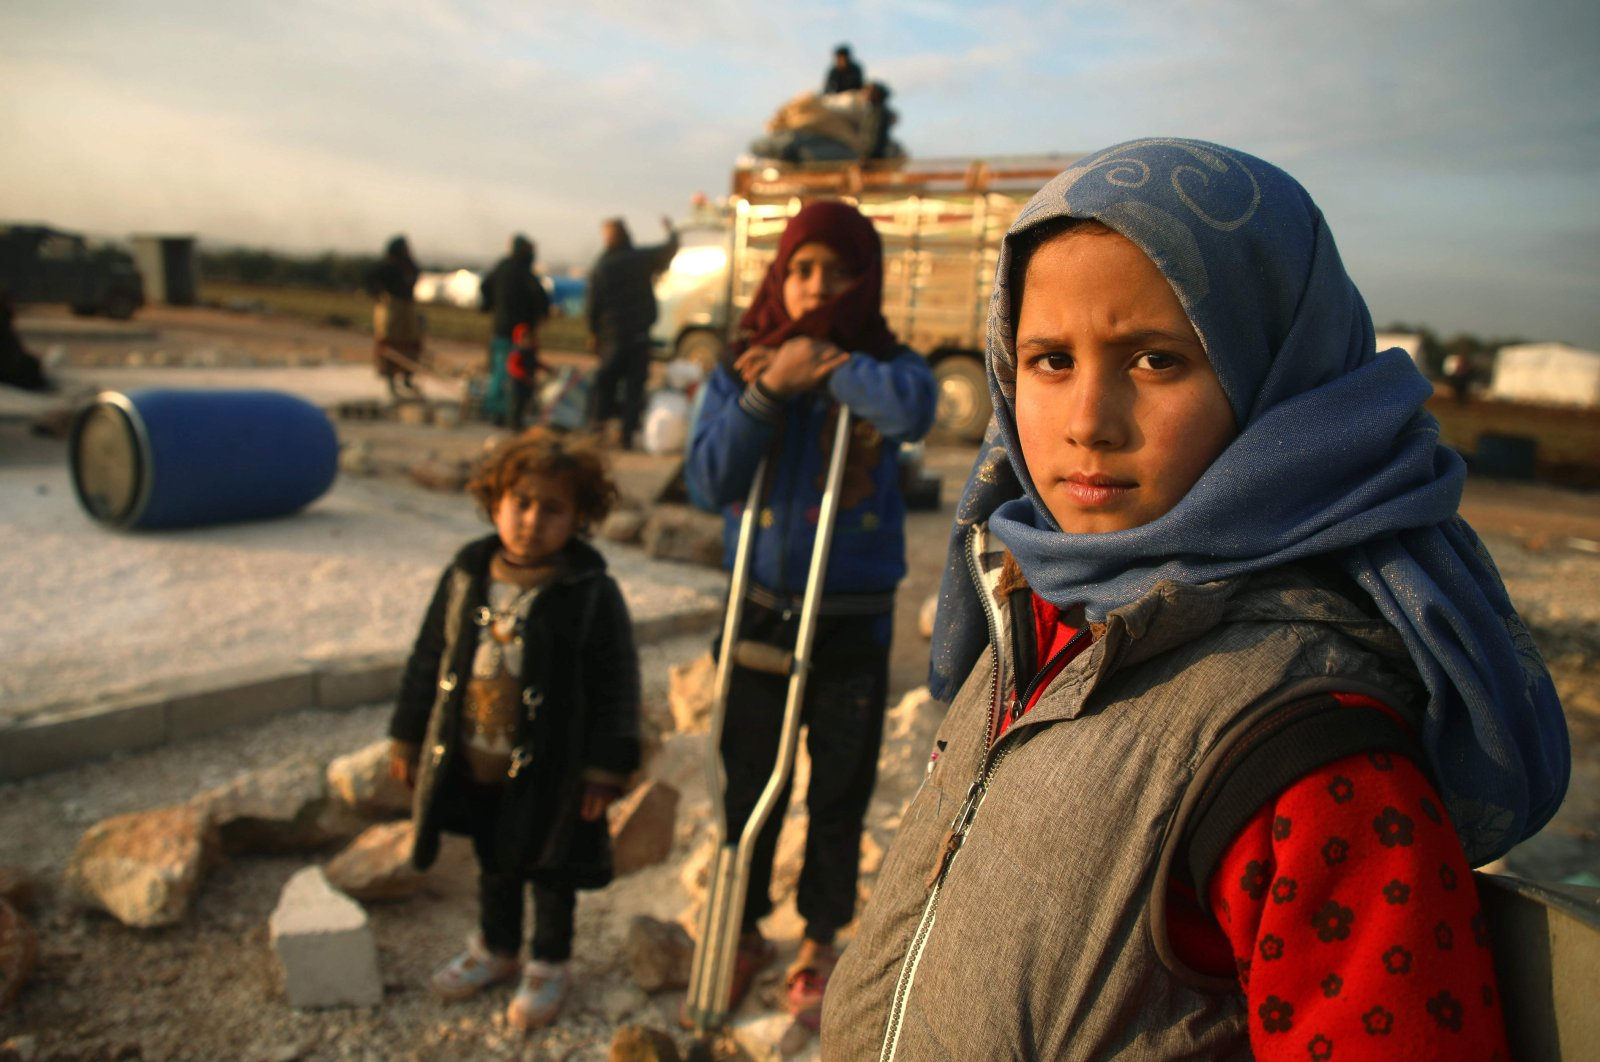 Syrian children pose for a picture as their families prepare to flee a camp for the displaced, east of Sarmada in the north of northwestern Idlib province, Syria, Feb. 16, 2020. (AFP Photo)